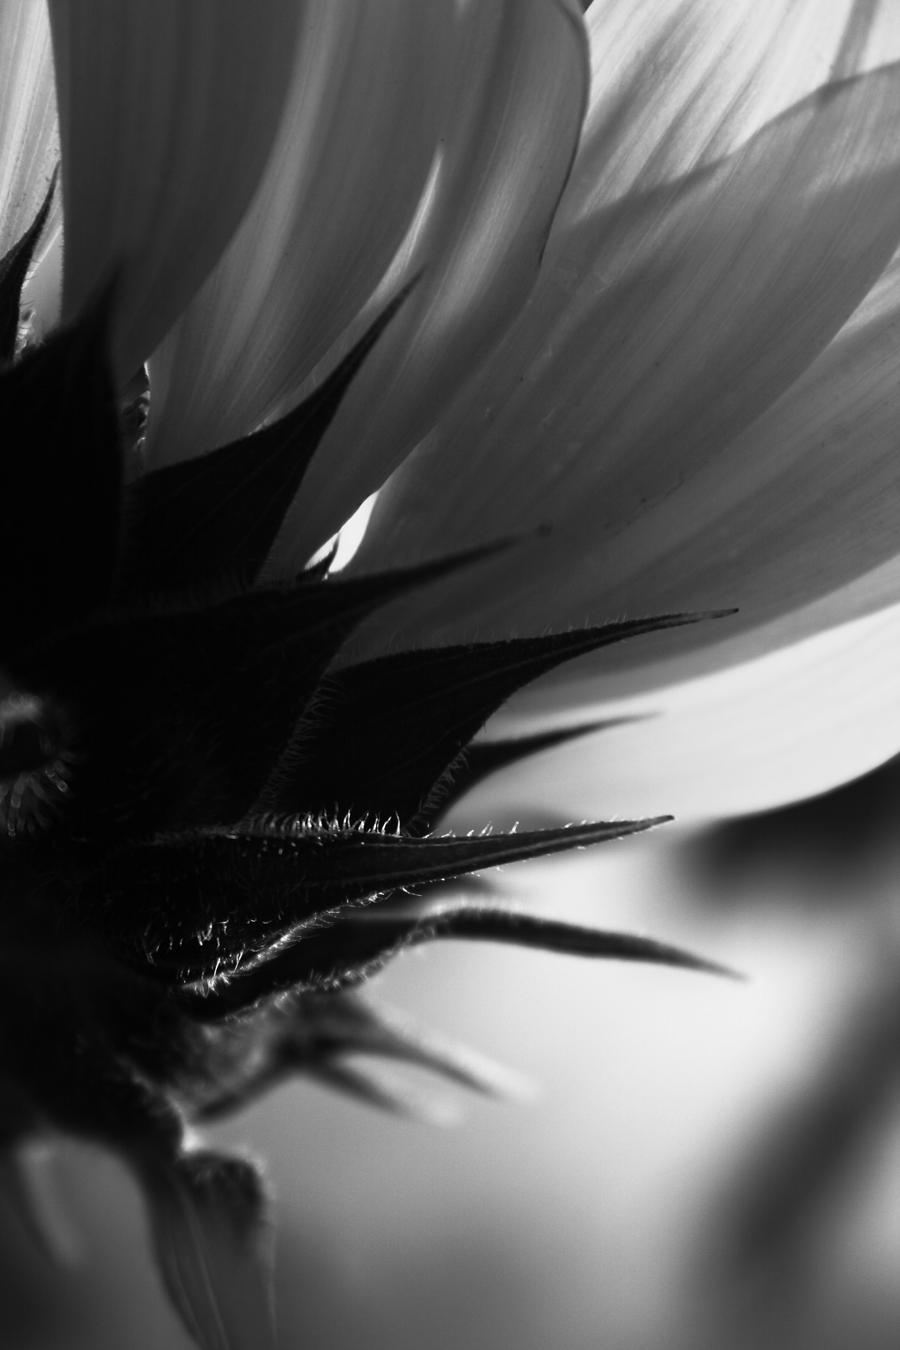 Black Sunflower by RuseOfPoison